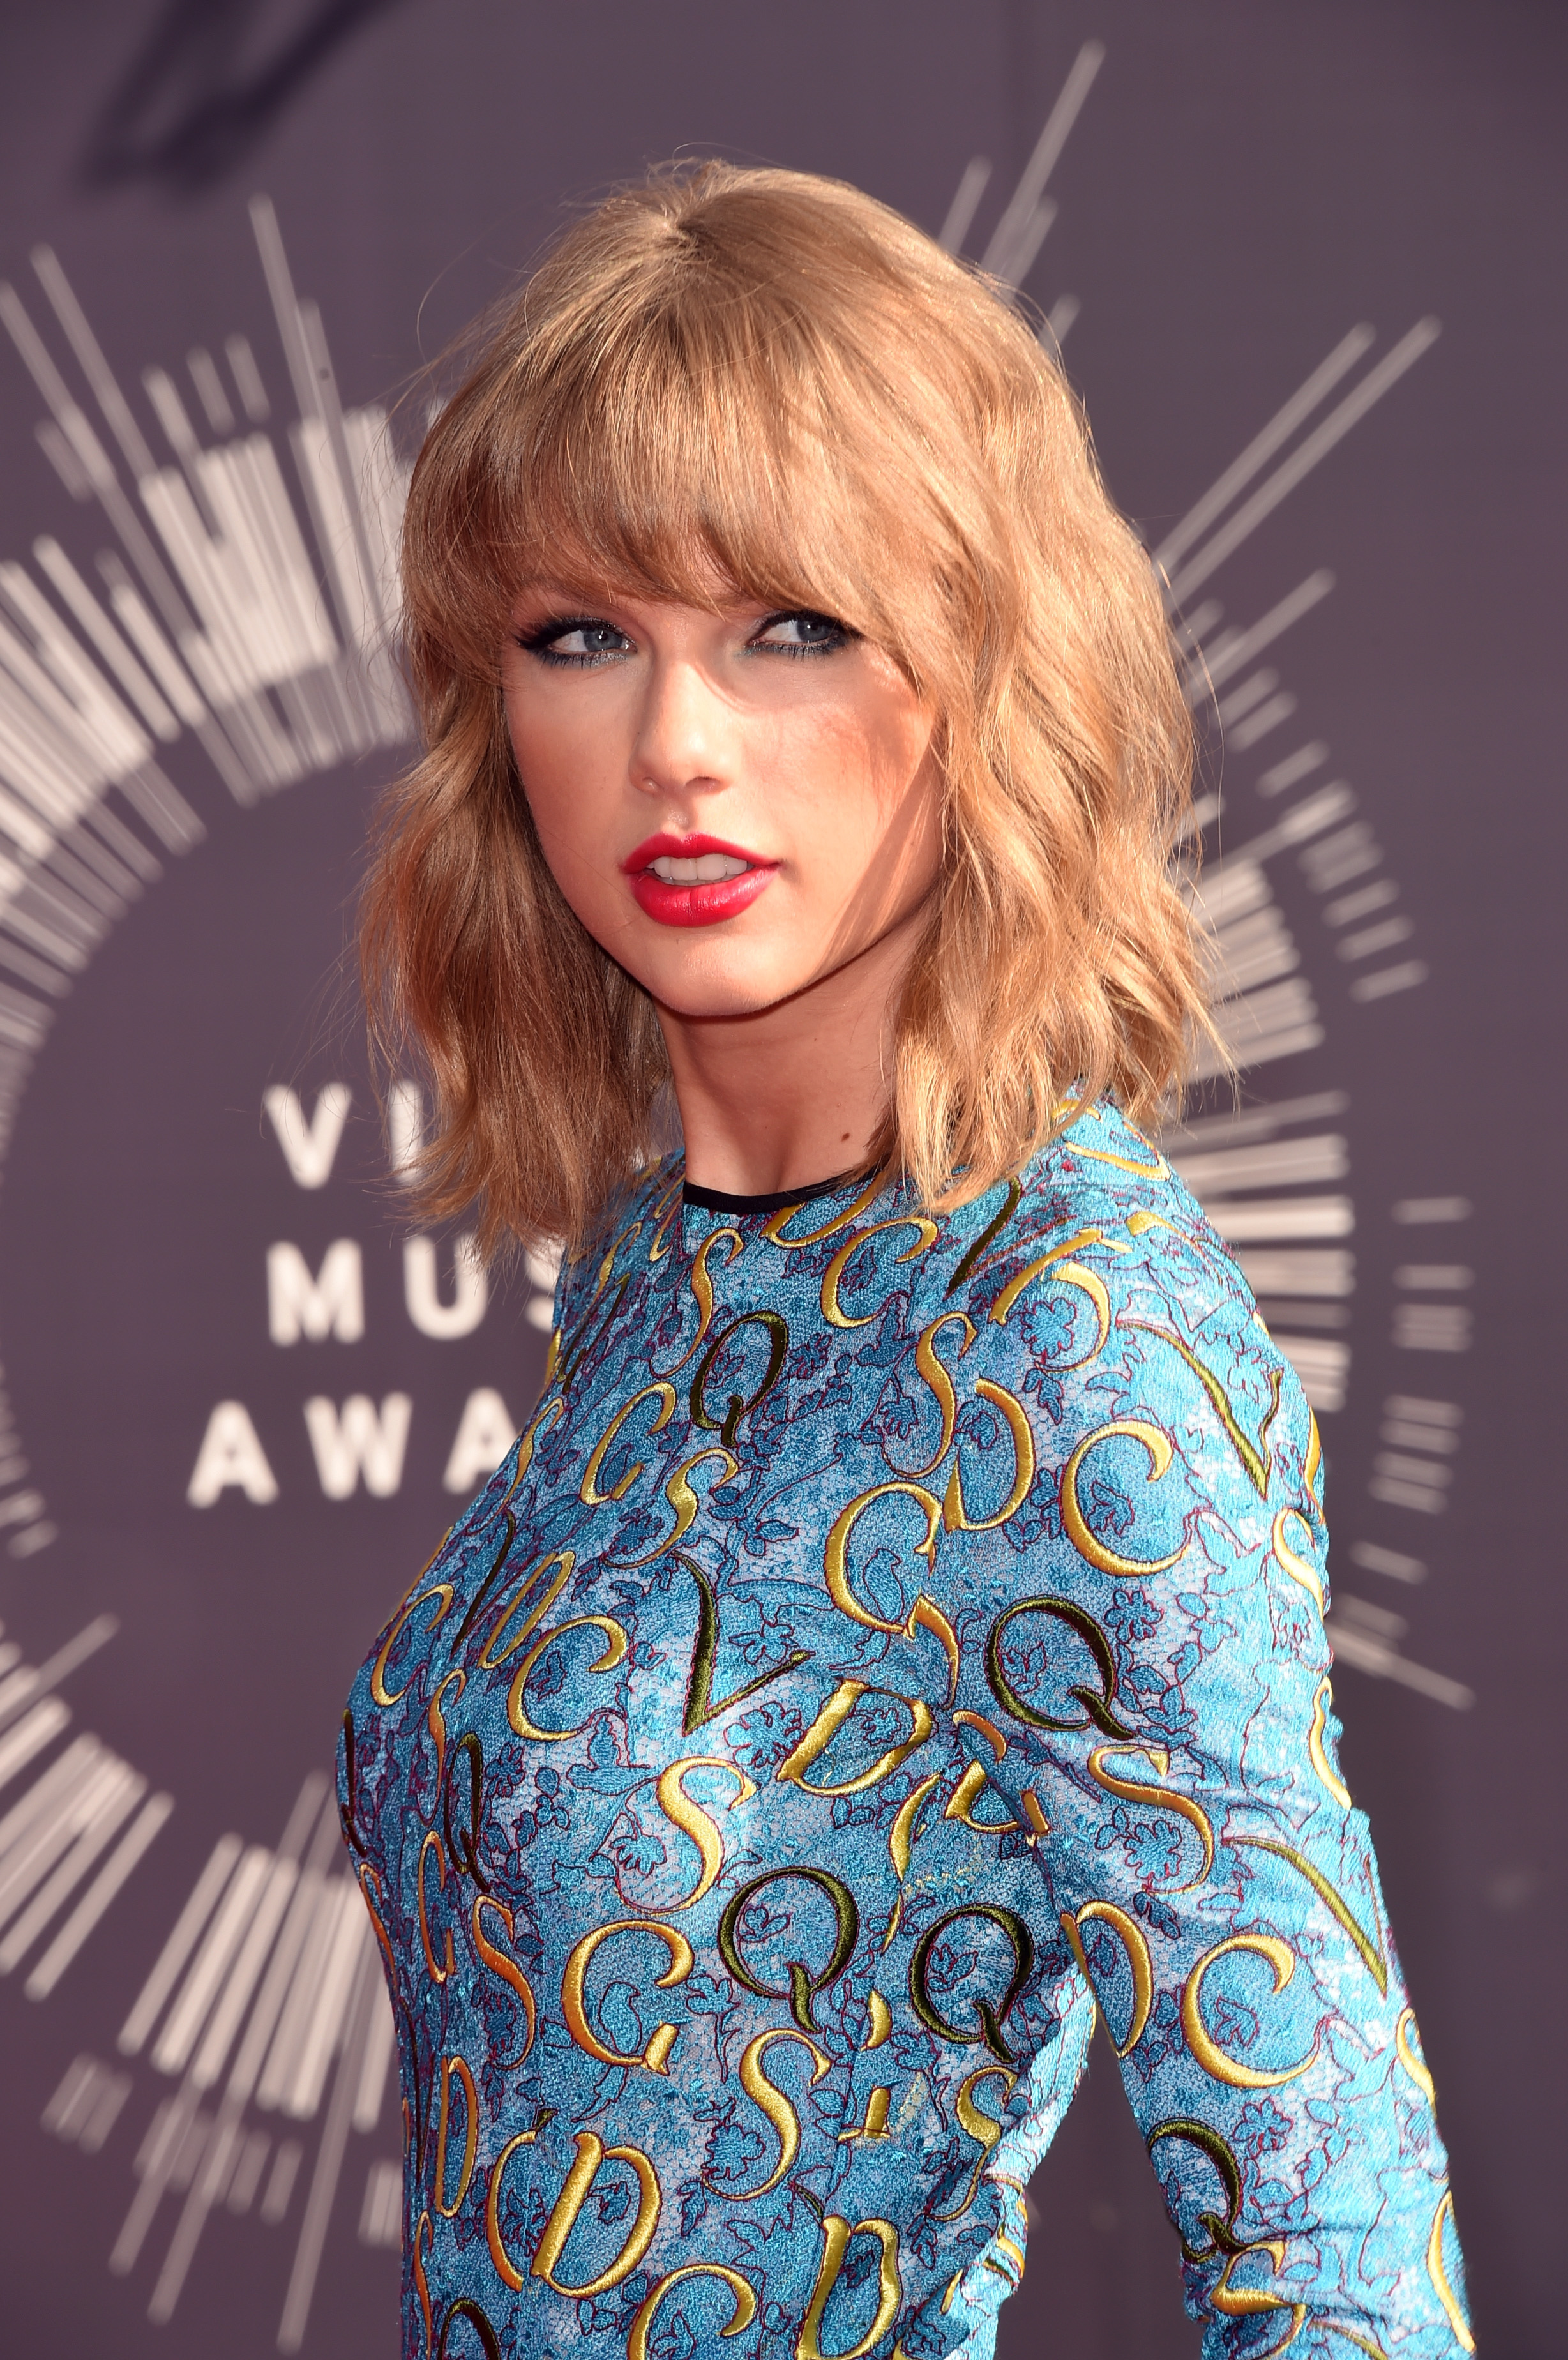 Taylor Swift attends the 2014 MTV Video Music Awards at The Forum on August 24, 2014 in Inglewood, California.